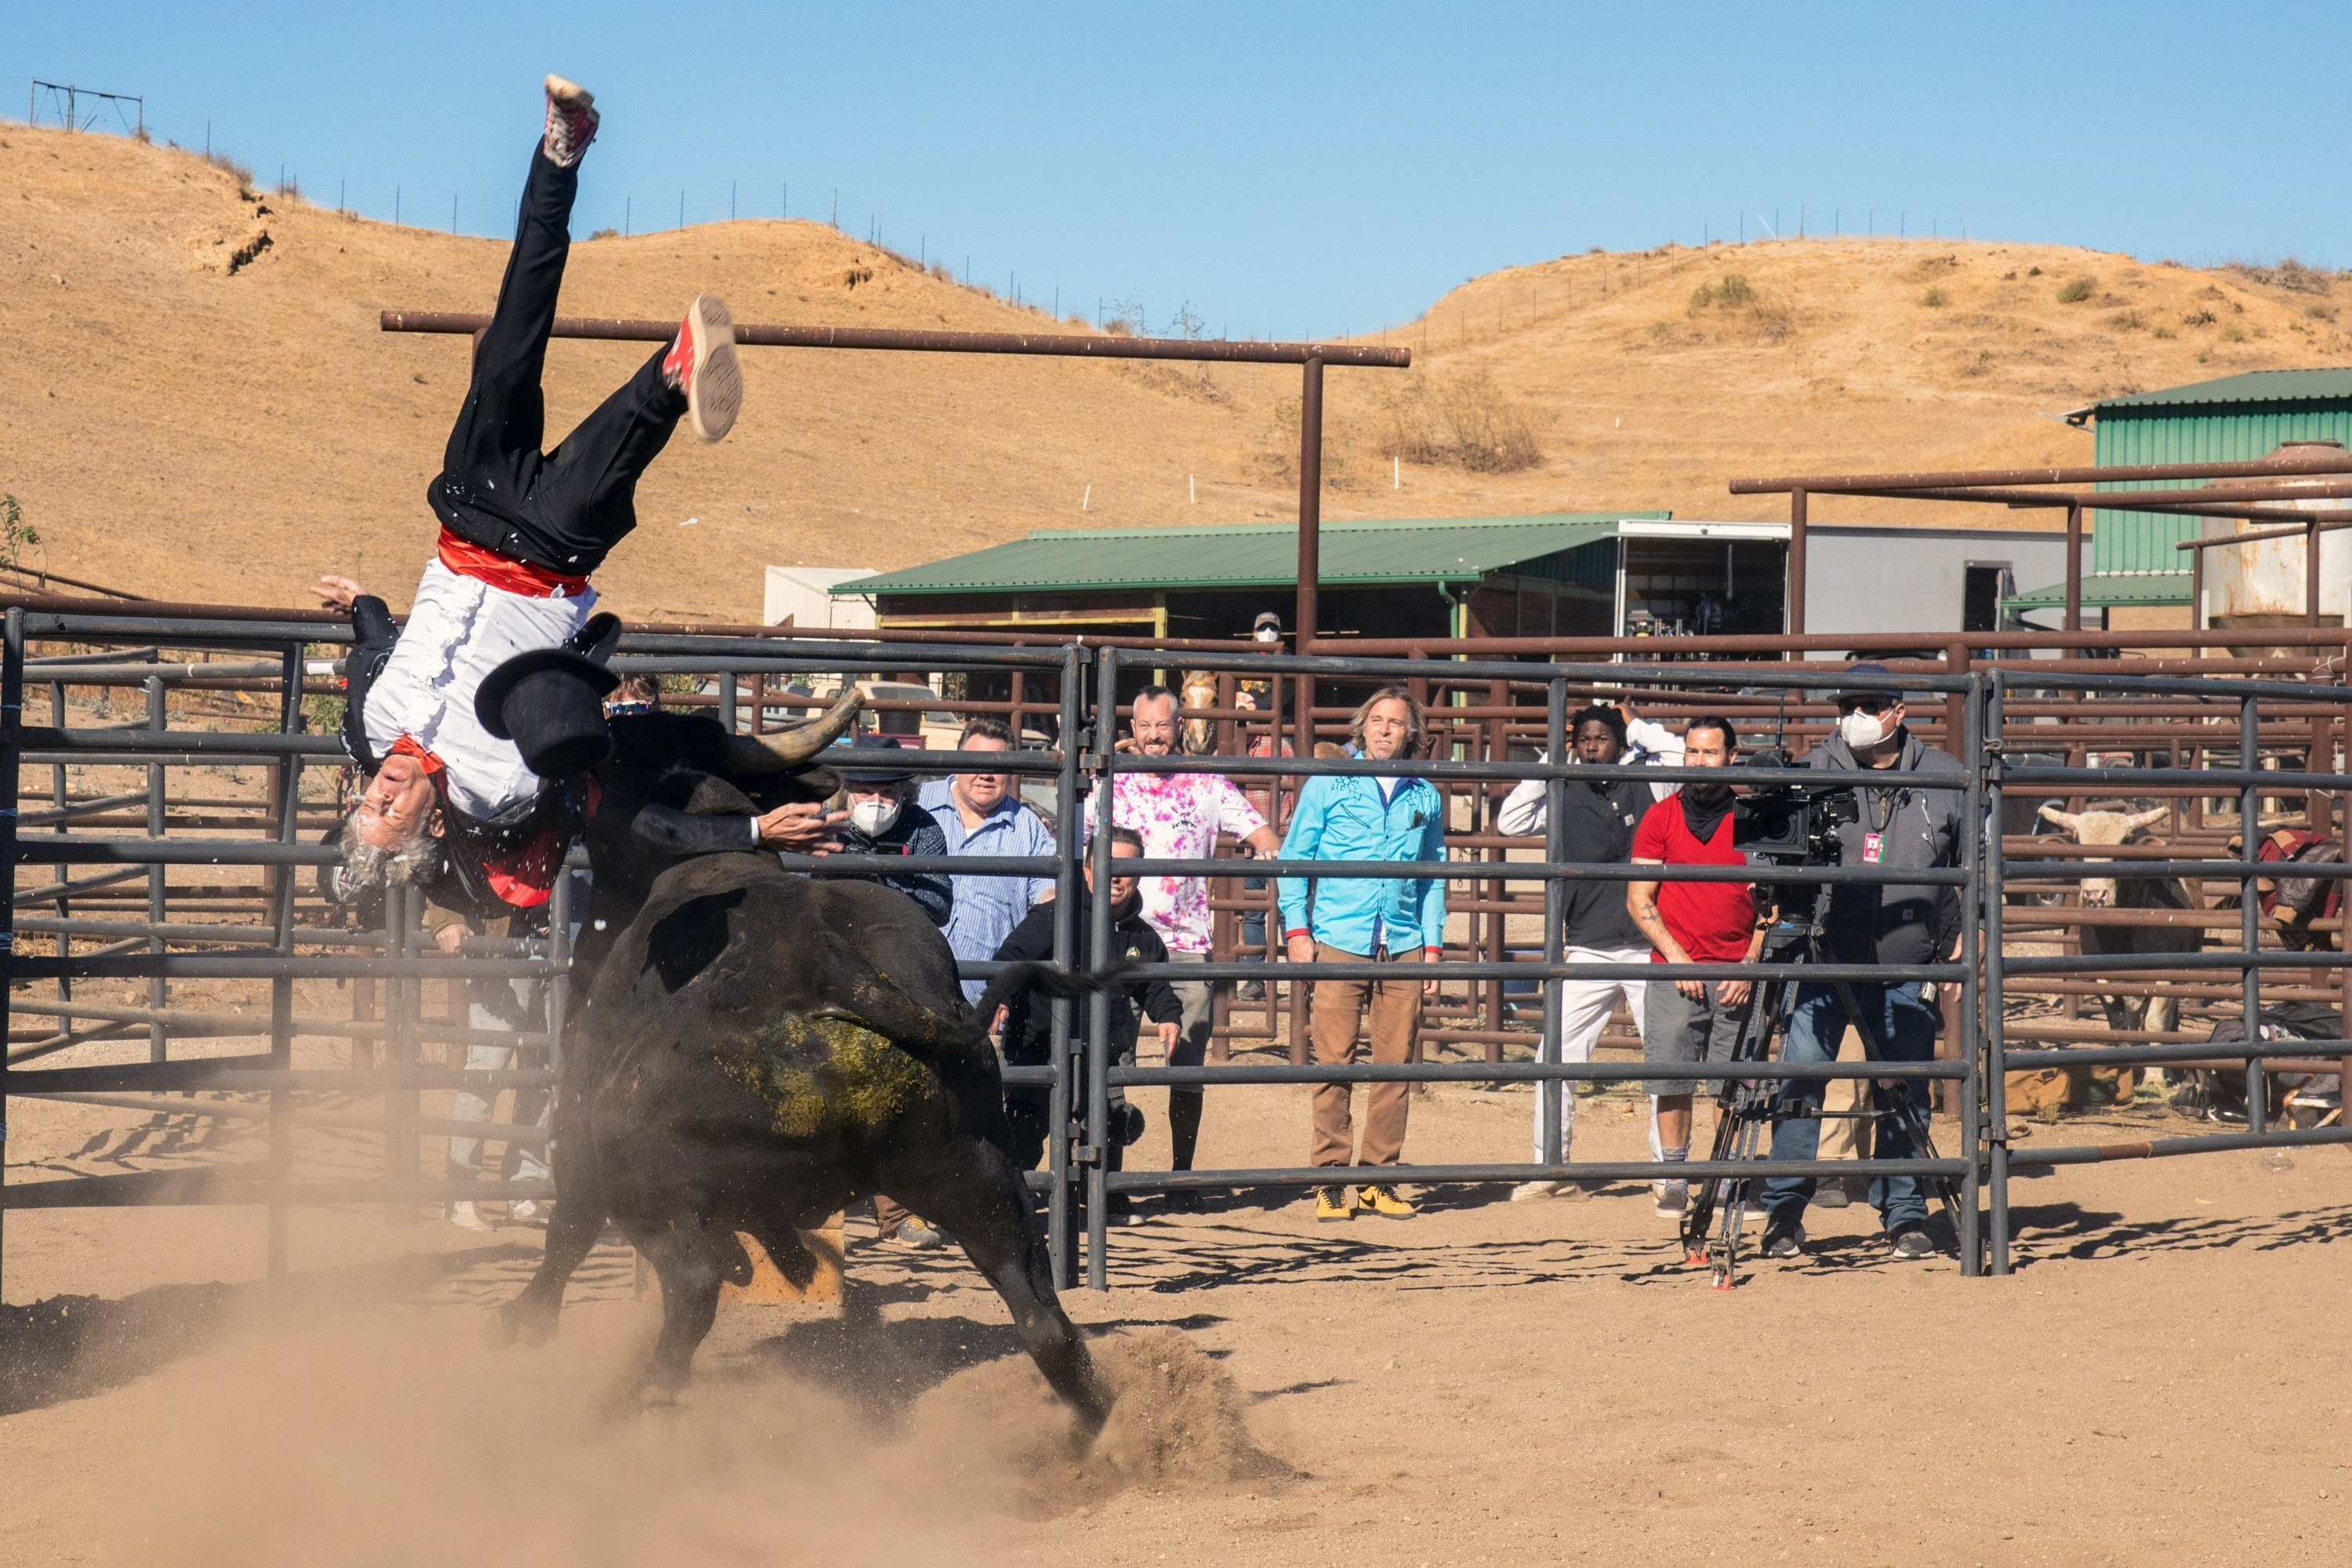 Johnny Knoxville getting hit by a bull